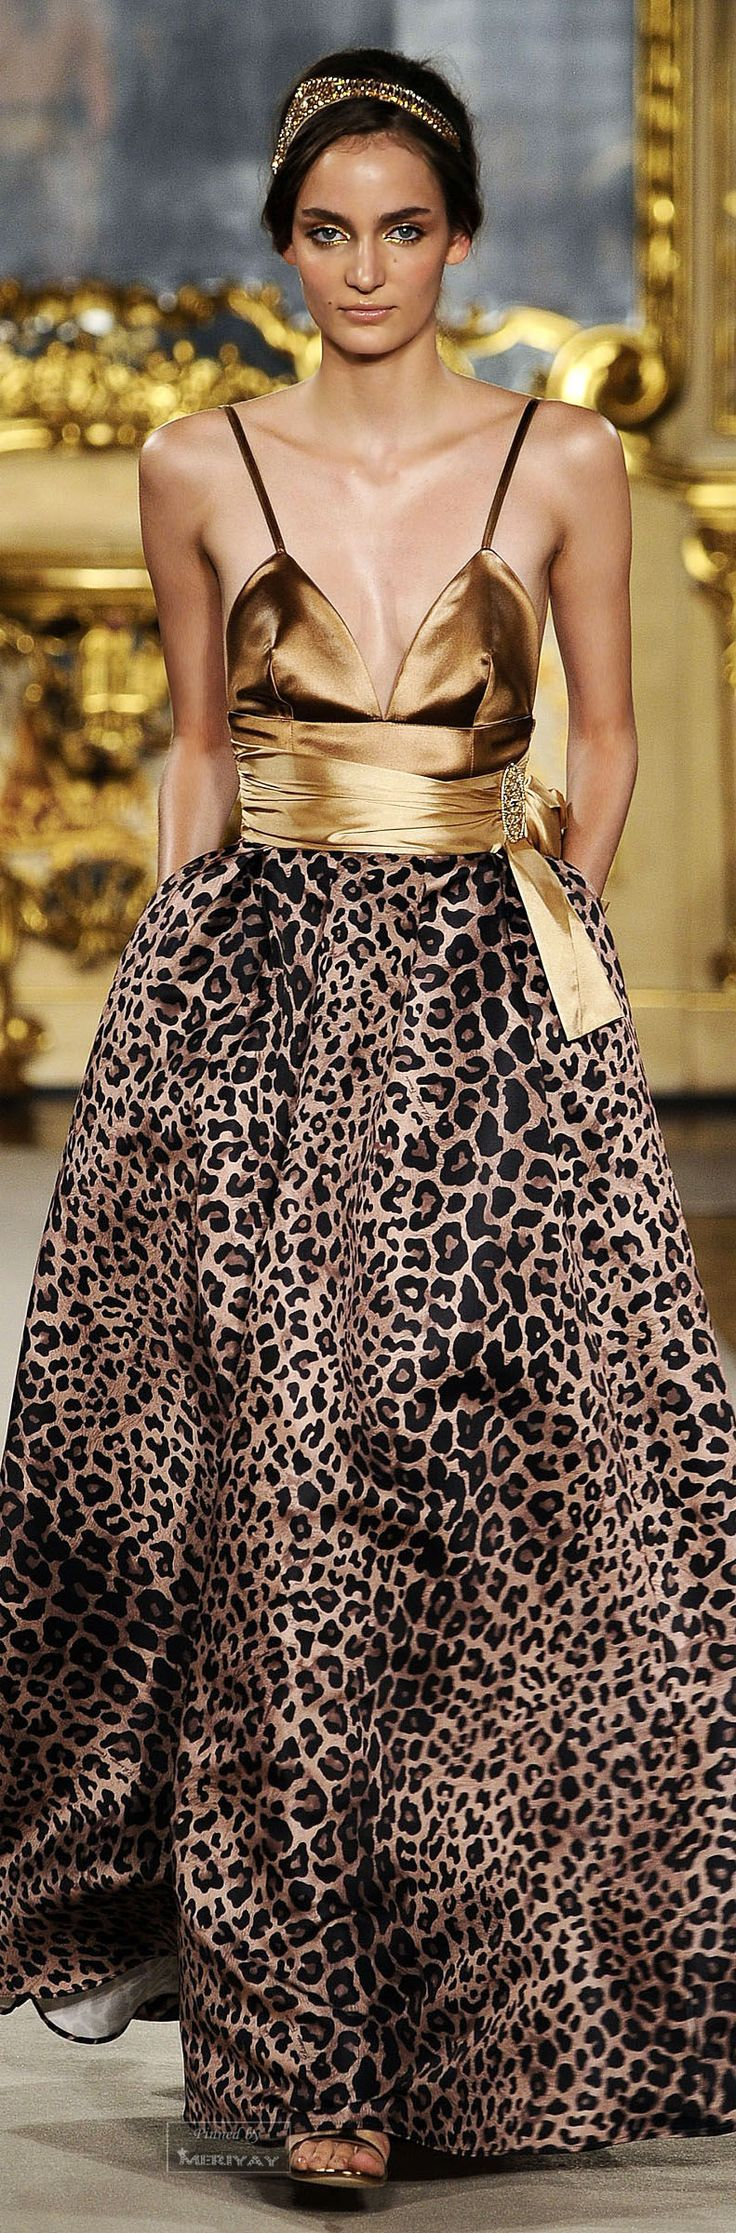 110 best animal print images on pinterest animal prints leopard her animal habitat you animal you elisabetta franchi ombrellifo Image collections